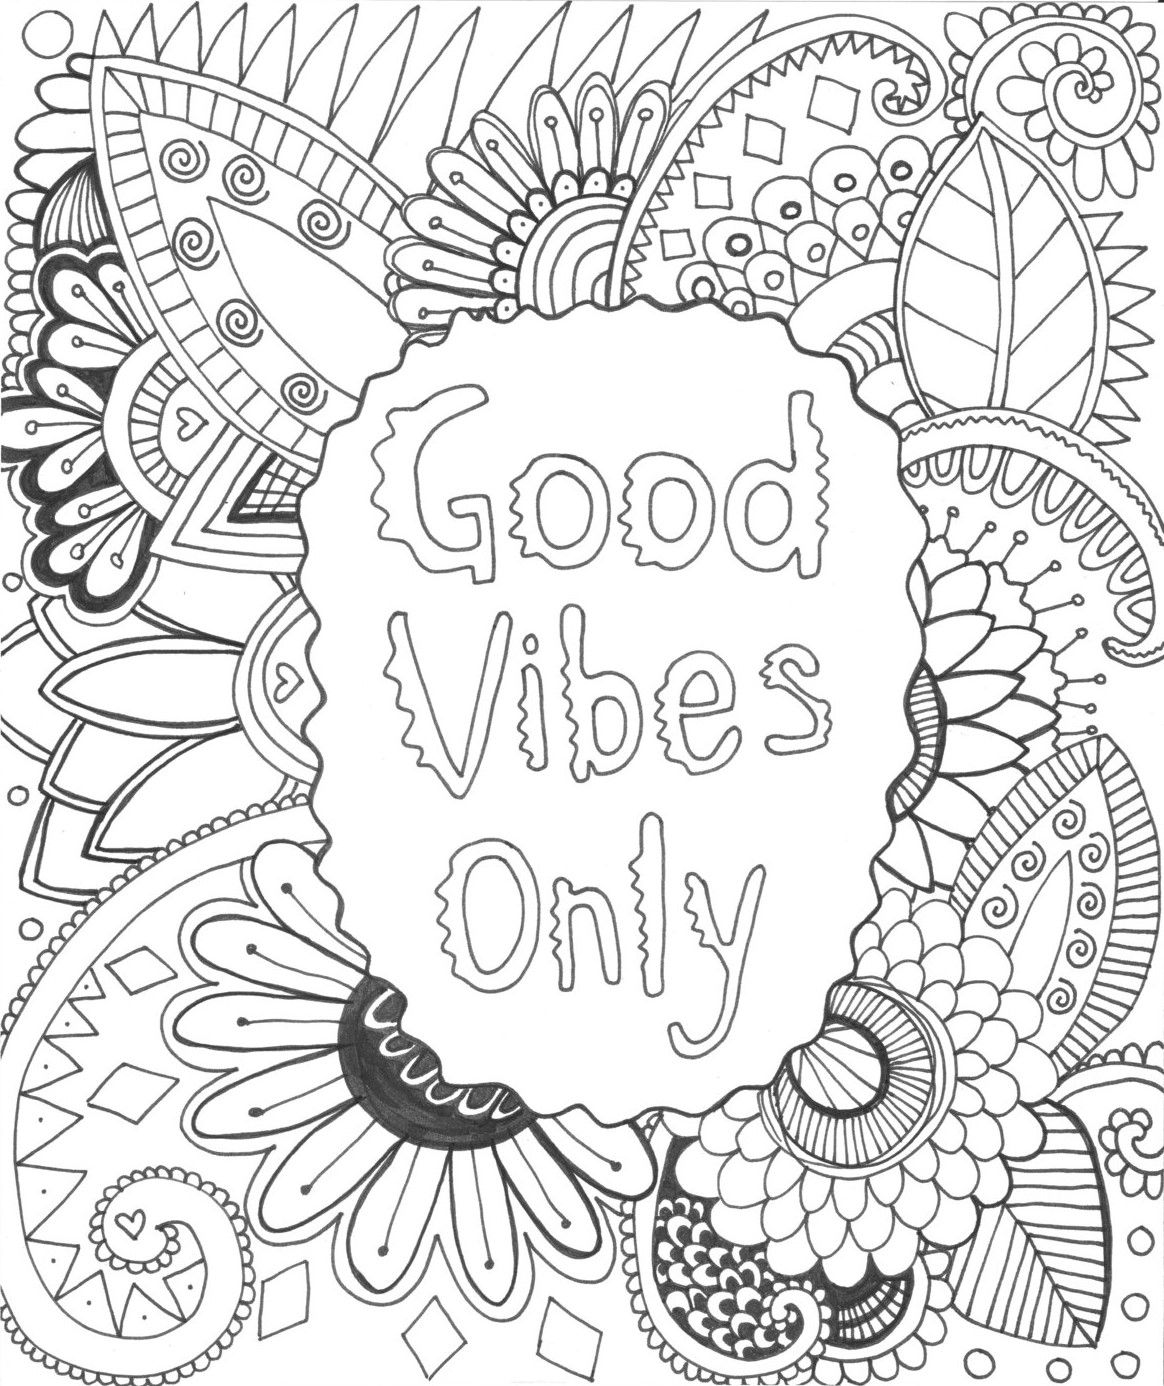 coloring pages for kids only | Good Vibes Only Coloring Page | Coloring Pages (Worded ...